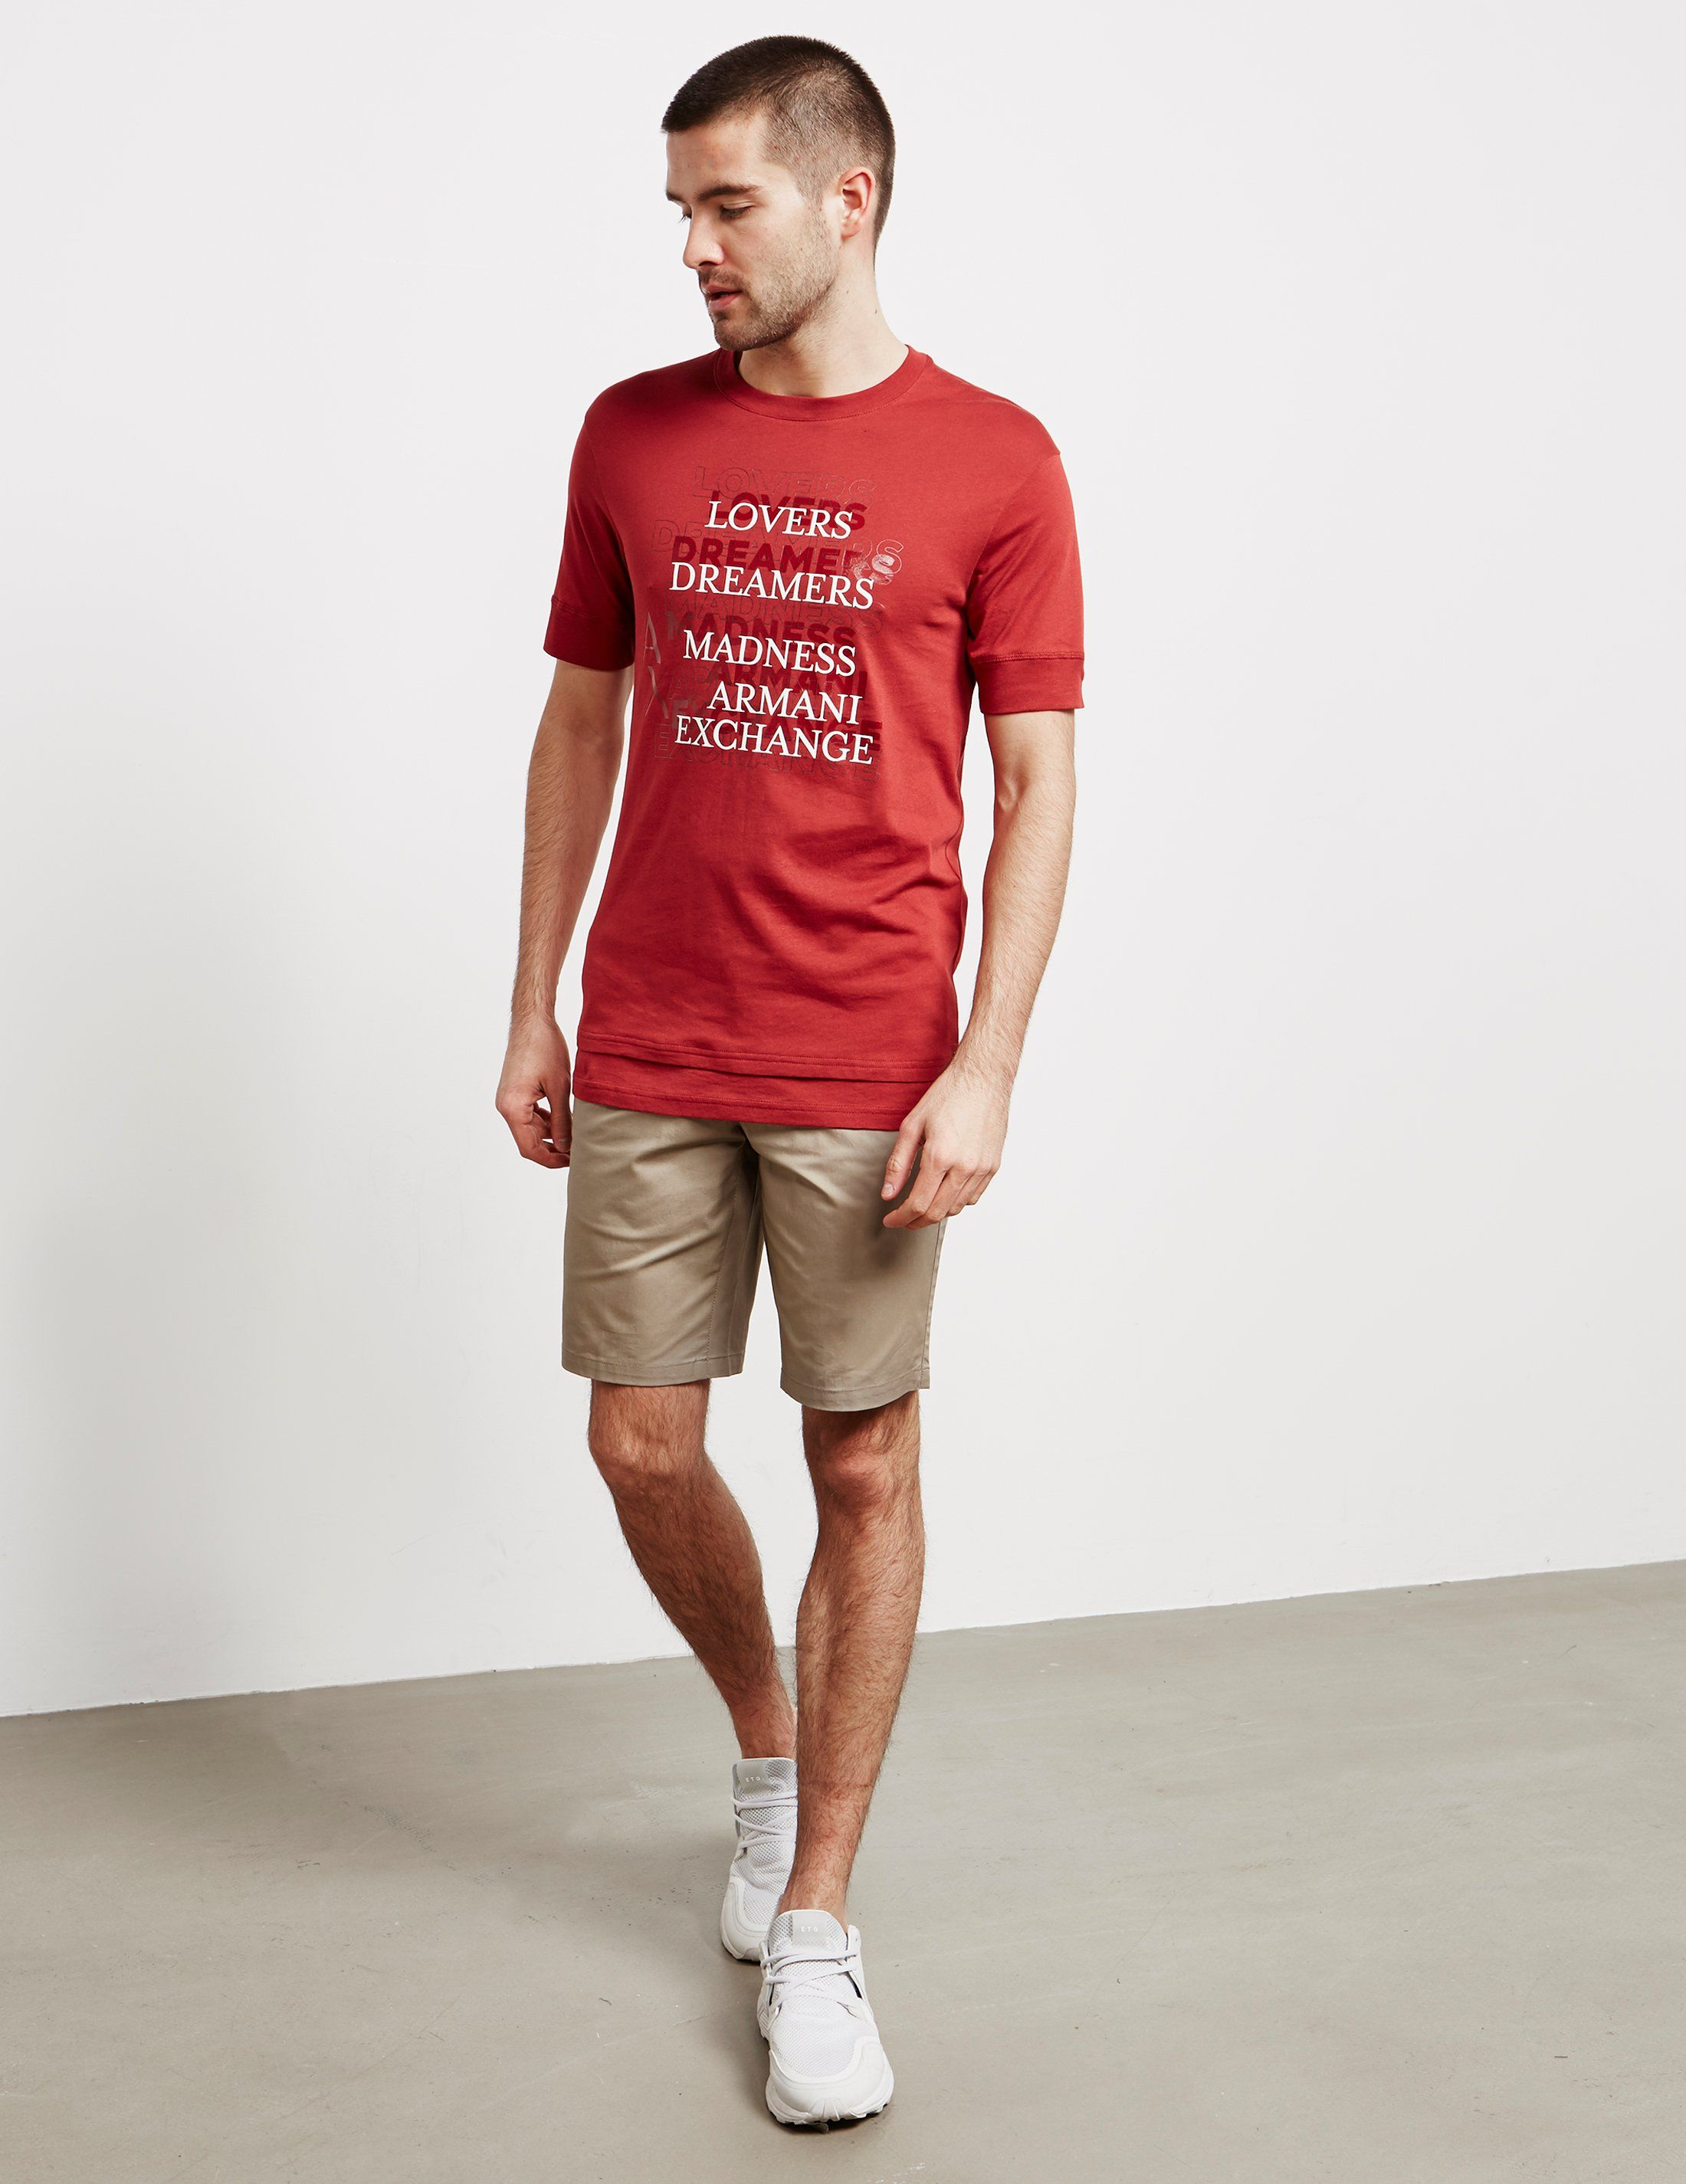 Armani Exchange Lovers Short Sleeve T-Shirt - Online Exclusive